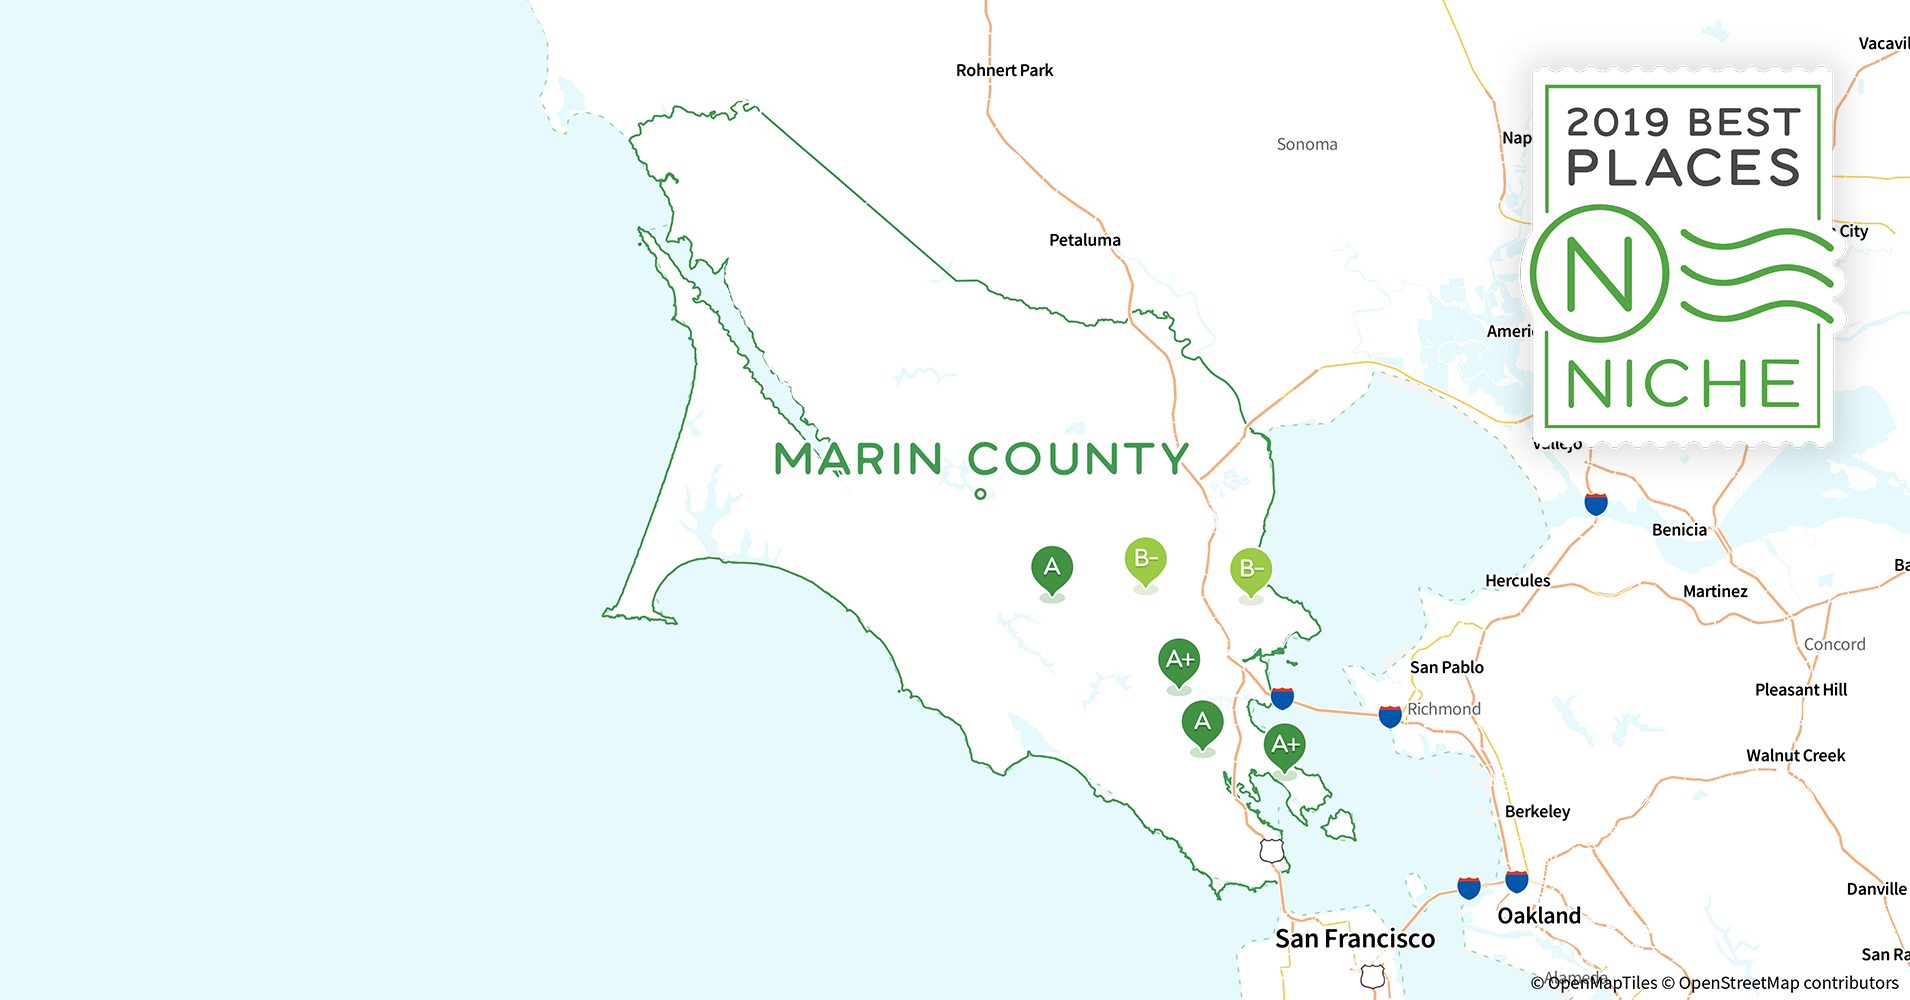 2019 Safe Places To Live In Marin County Ca Niche